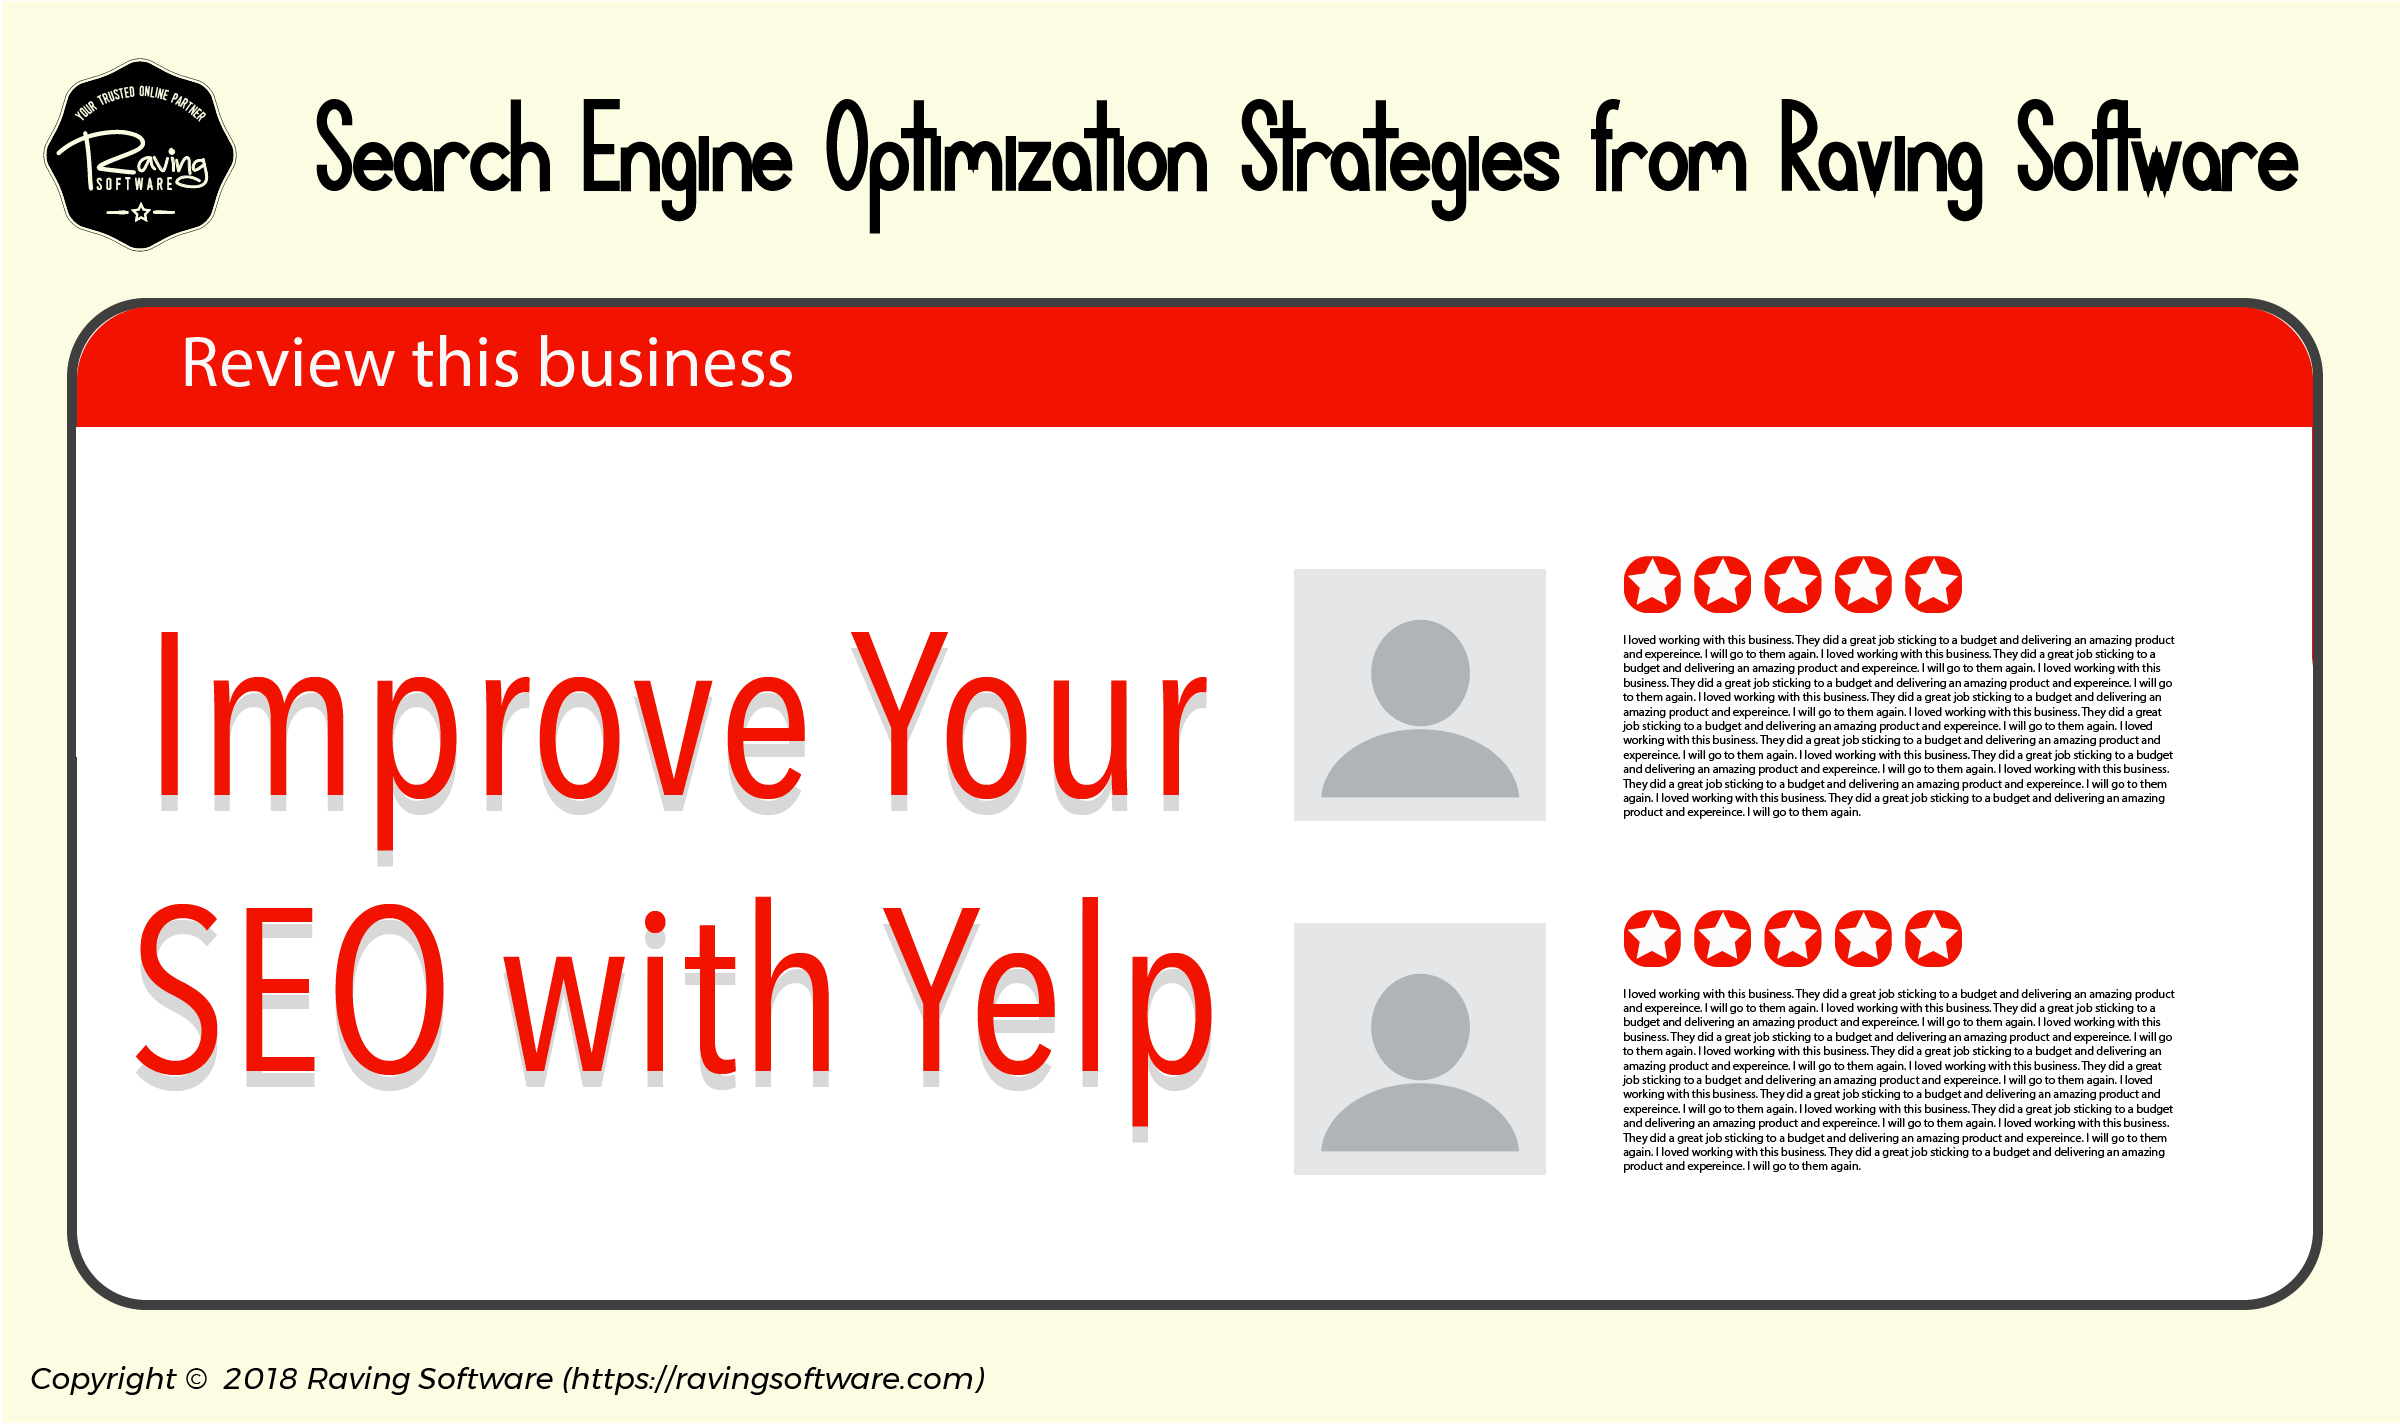 Improve Your SEO with Yelp